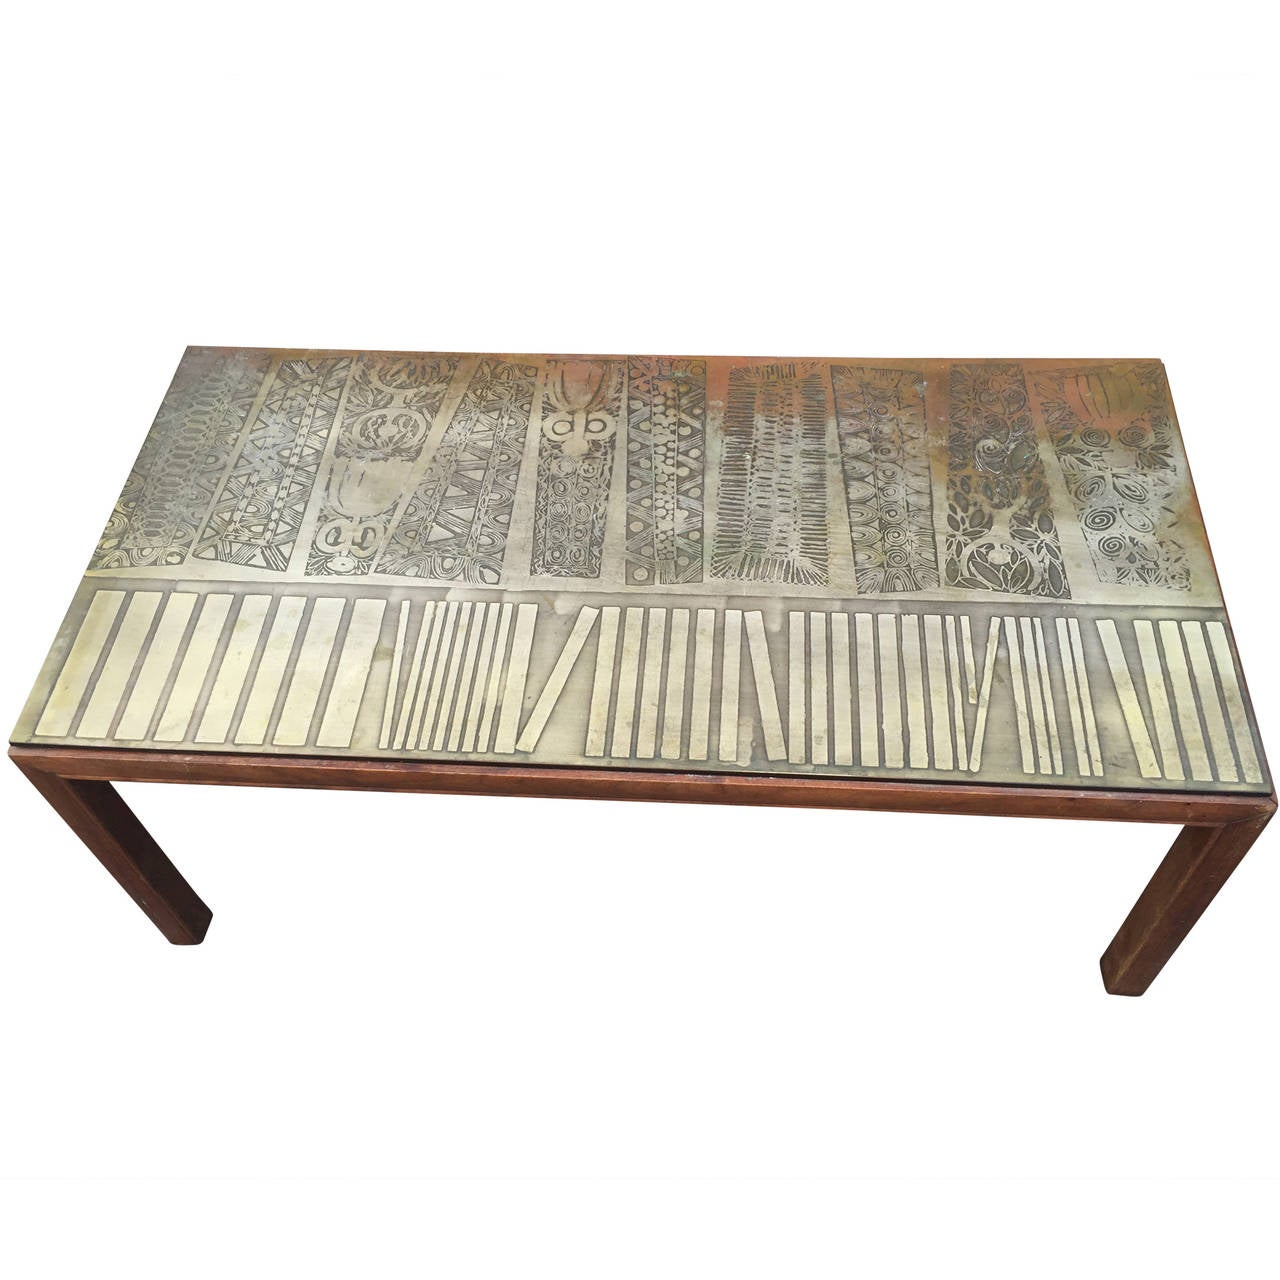 Italian Modernist Coffee Table With Etched Metal Top At 1stdibs